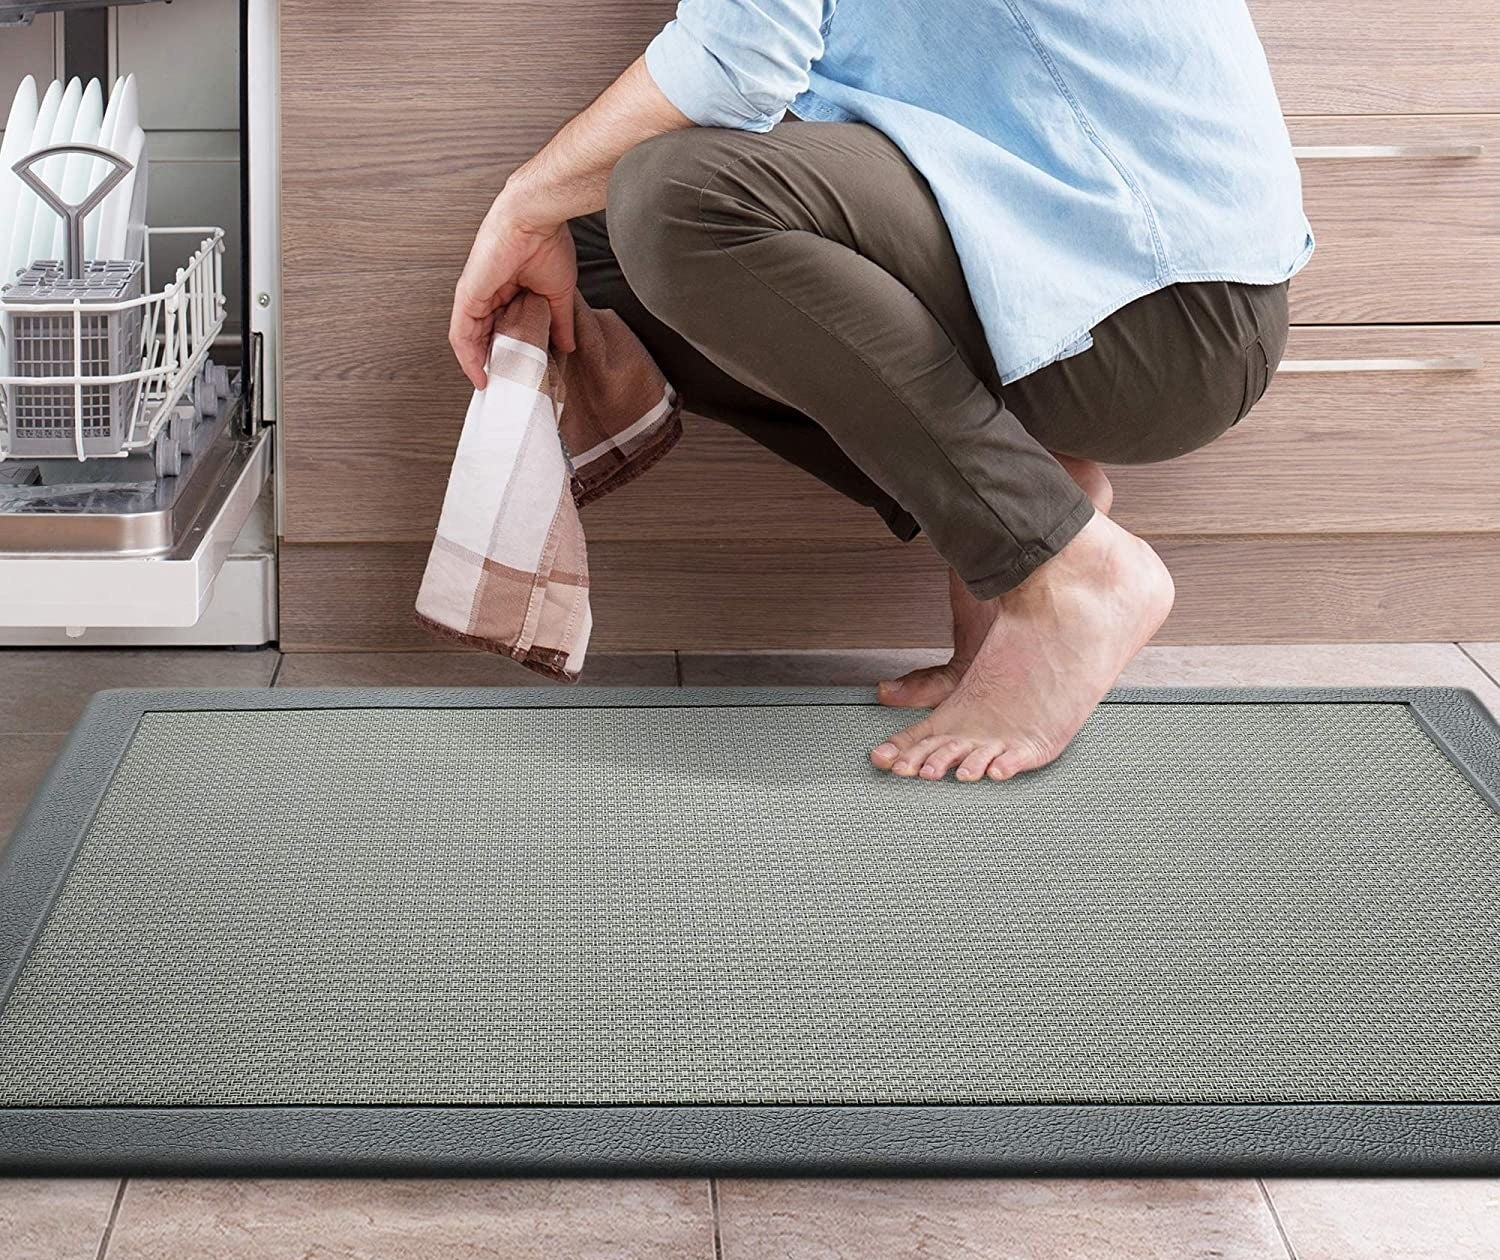 A person crouching on the anti-fatigue mat